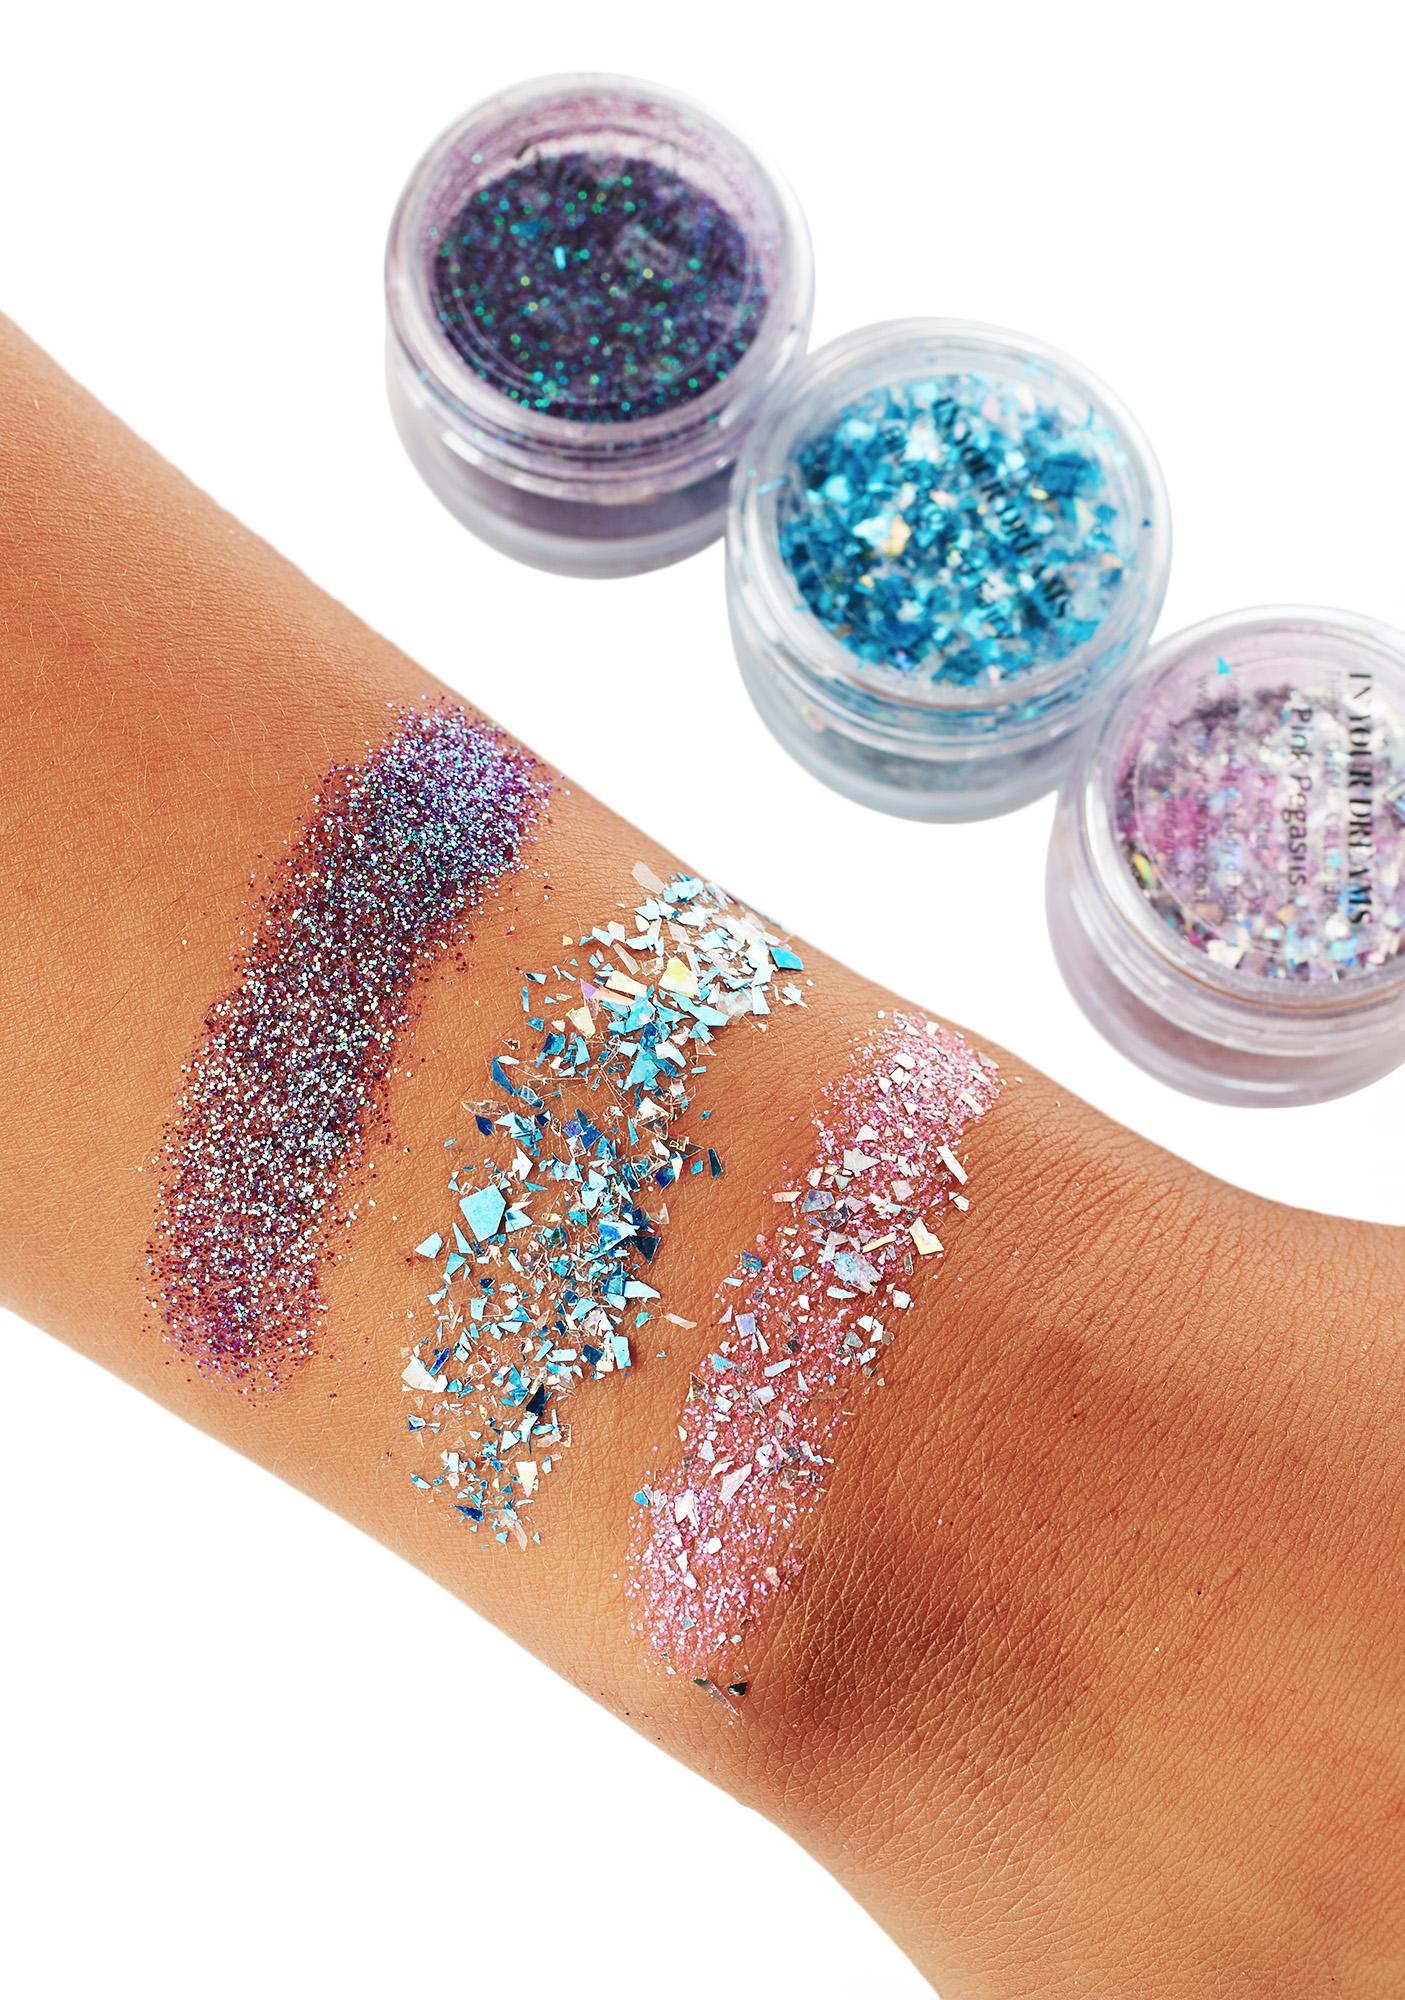 In Your Dreams Purple Dragon Cosmetic Glitter